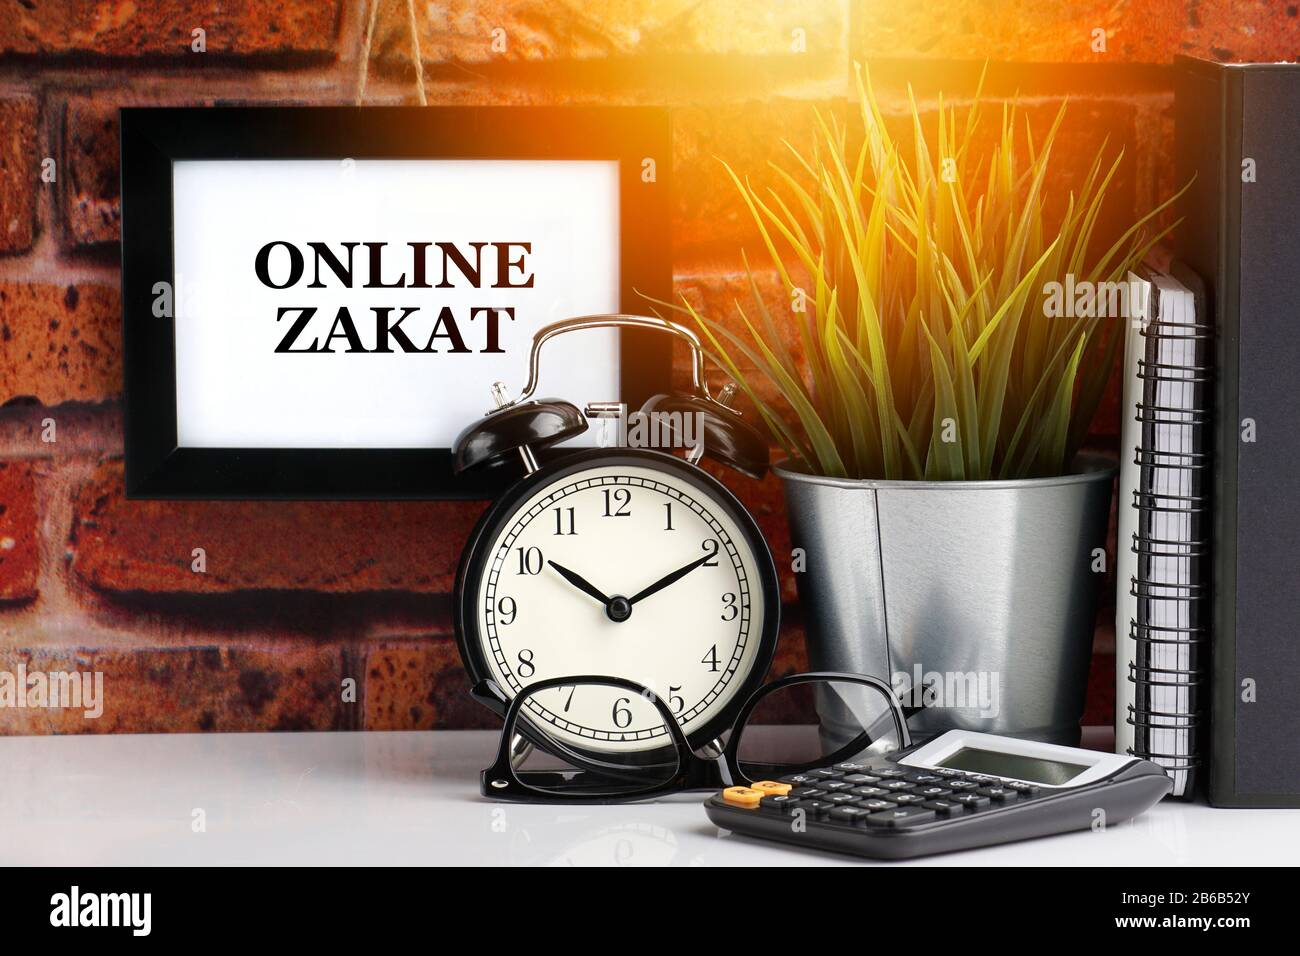 zakat high resolution stock photography and images alamy https www alamy com online zakat text with alarm clock books and vase on brick background business quotes and copy space concept image348140771 html